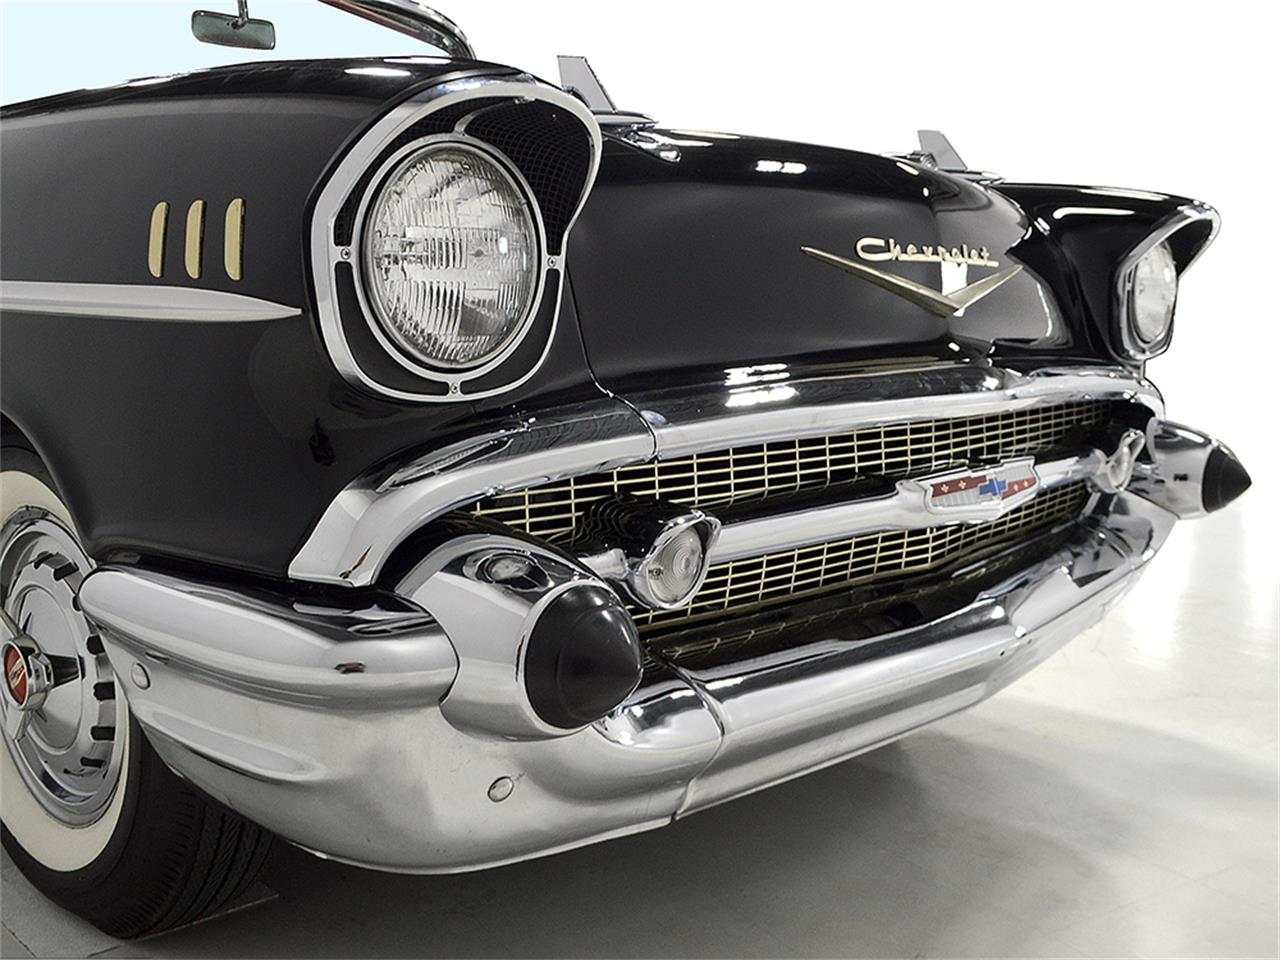 Large Picture of Classic '57 Chevrolet Bel Air - $74,900.00 - M6IV